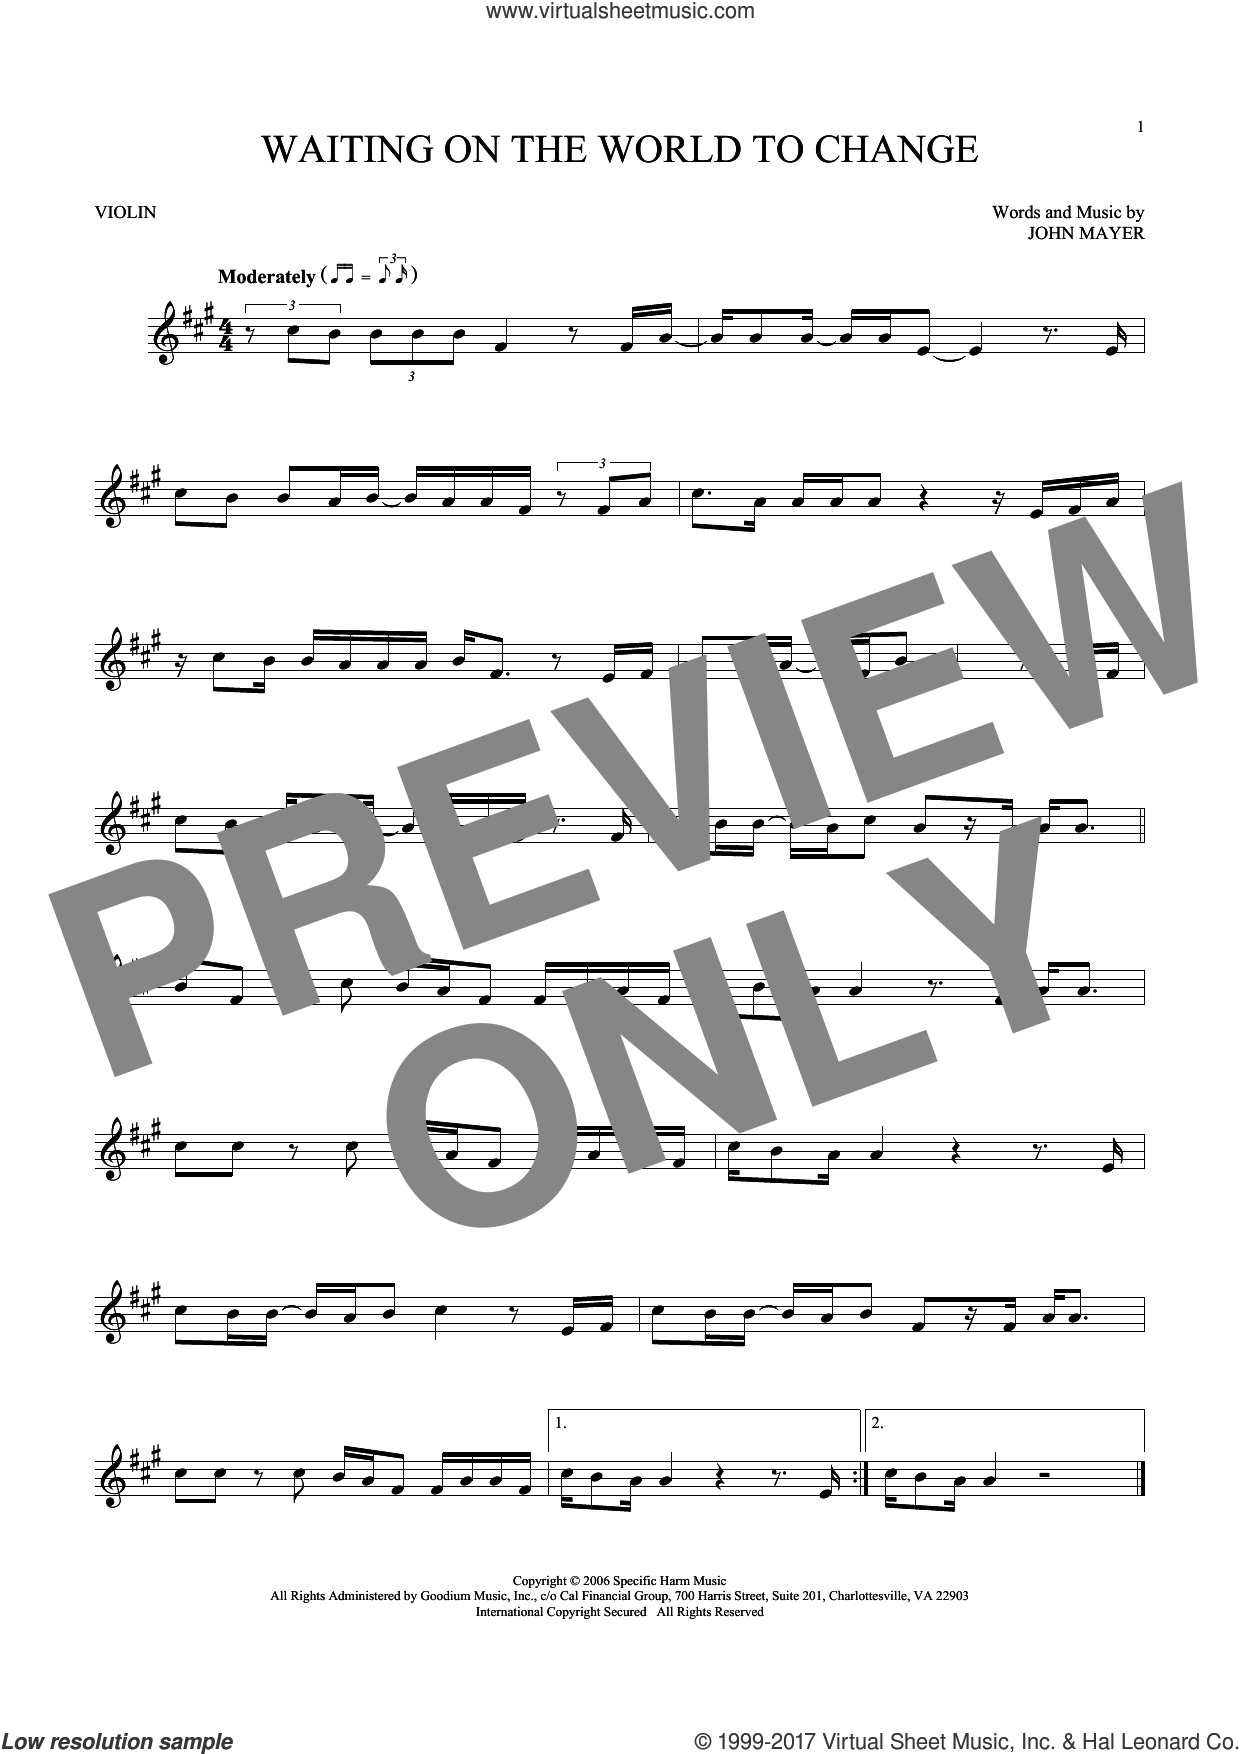 Waiting On The World To Change sheet music for violin solo by John Mayer, intermediate skill level